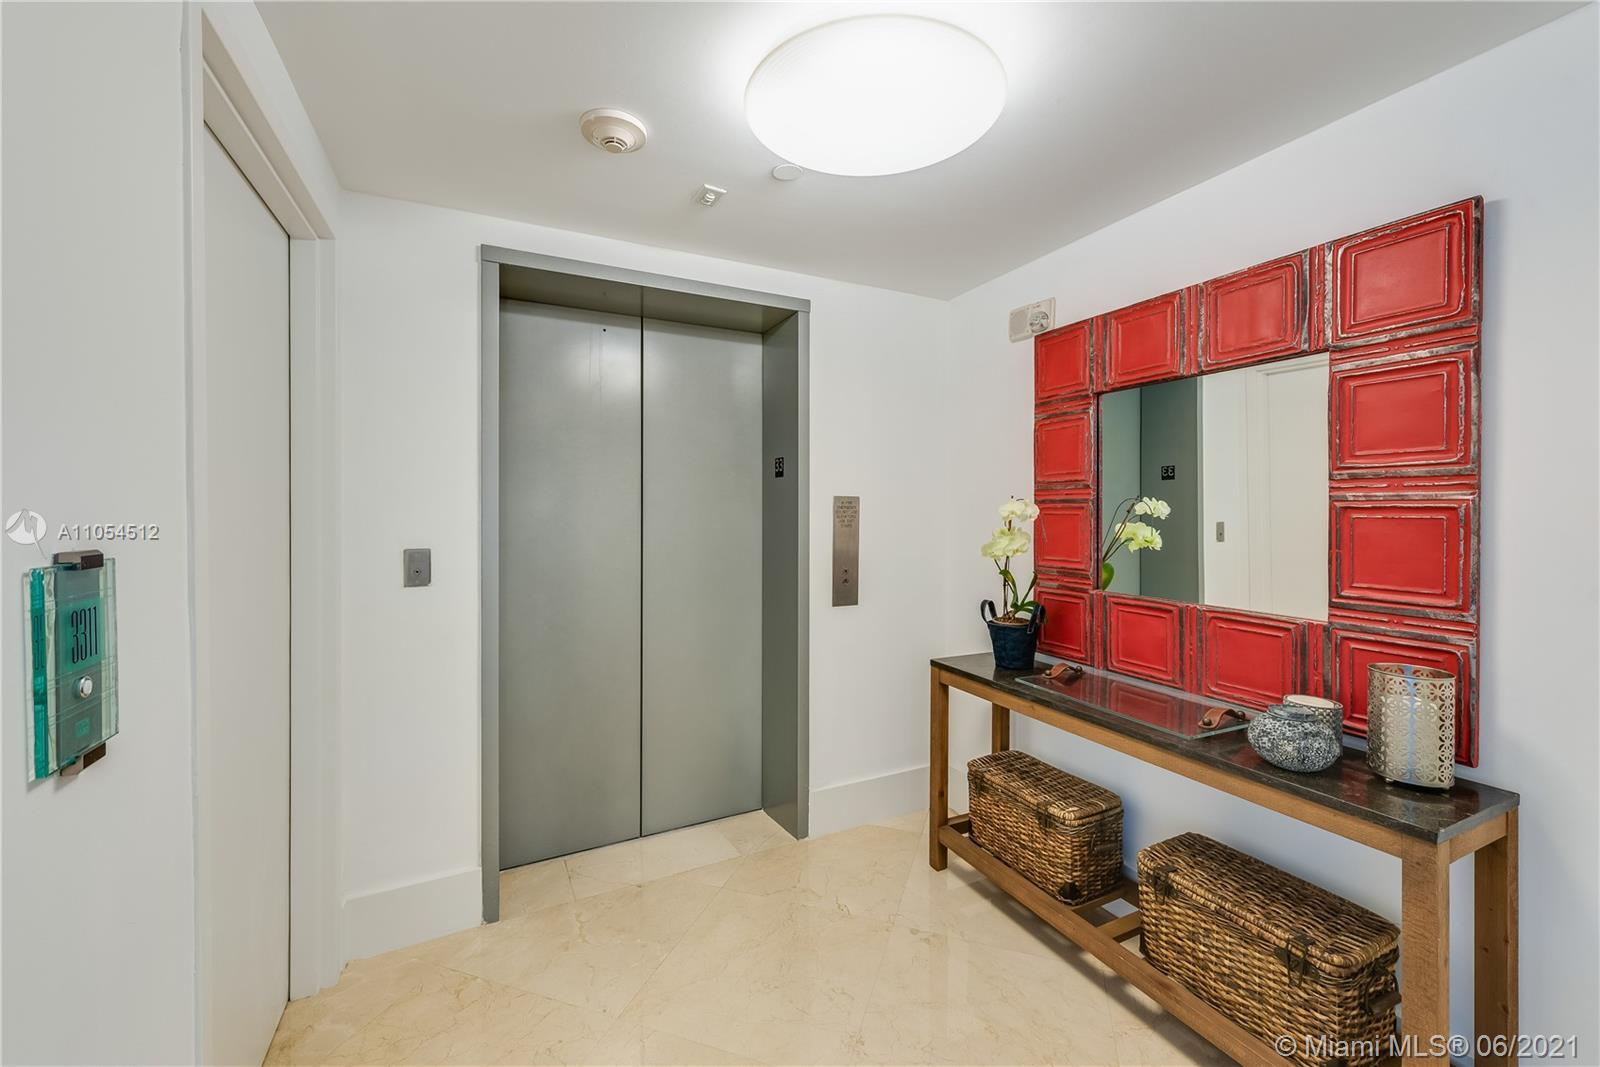 Amazing unit. Southeast views, four bedrooms, 4.5 bathrooms. Concierge services to tend to your high